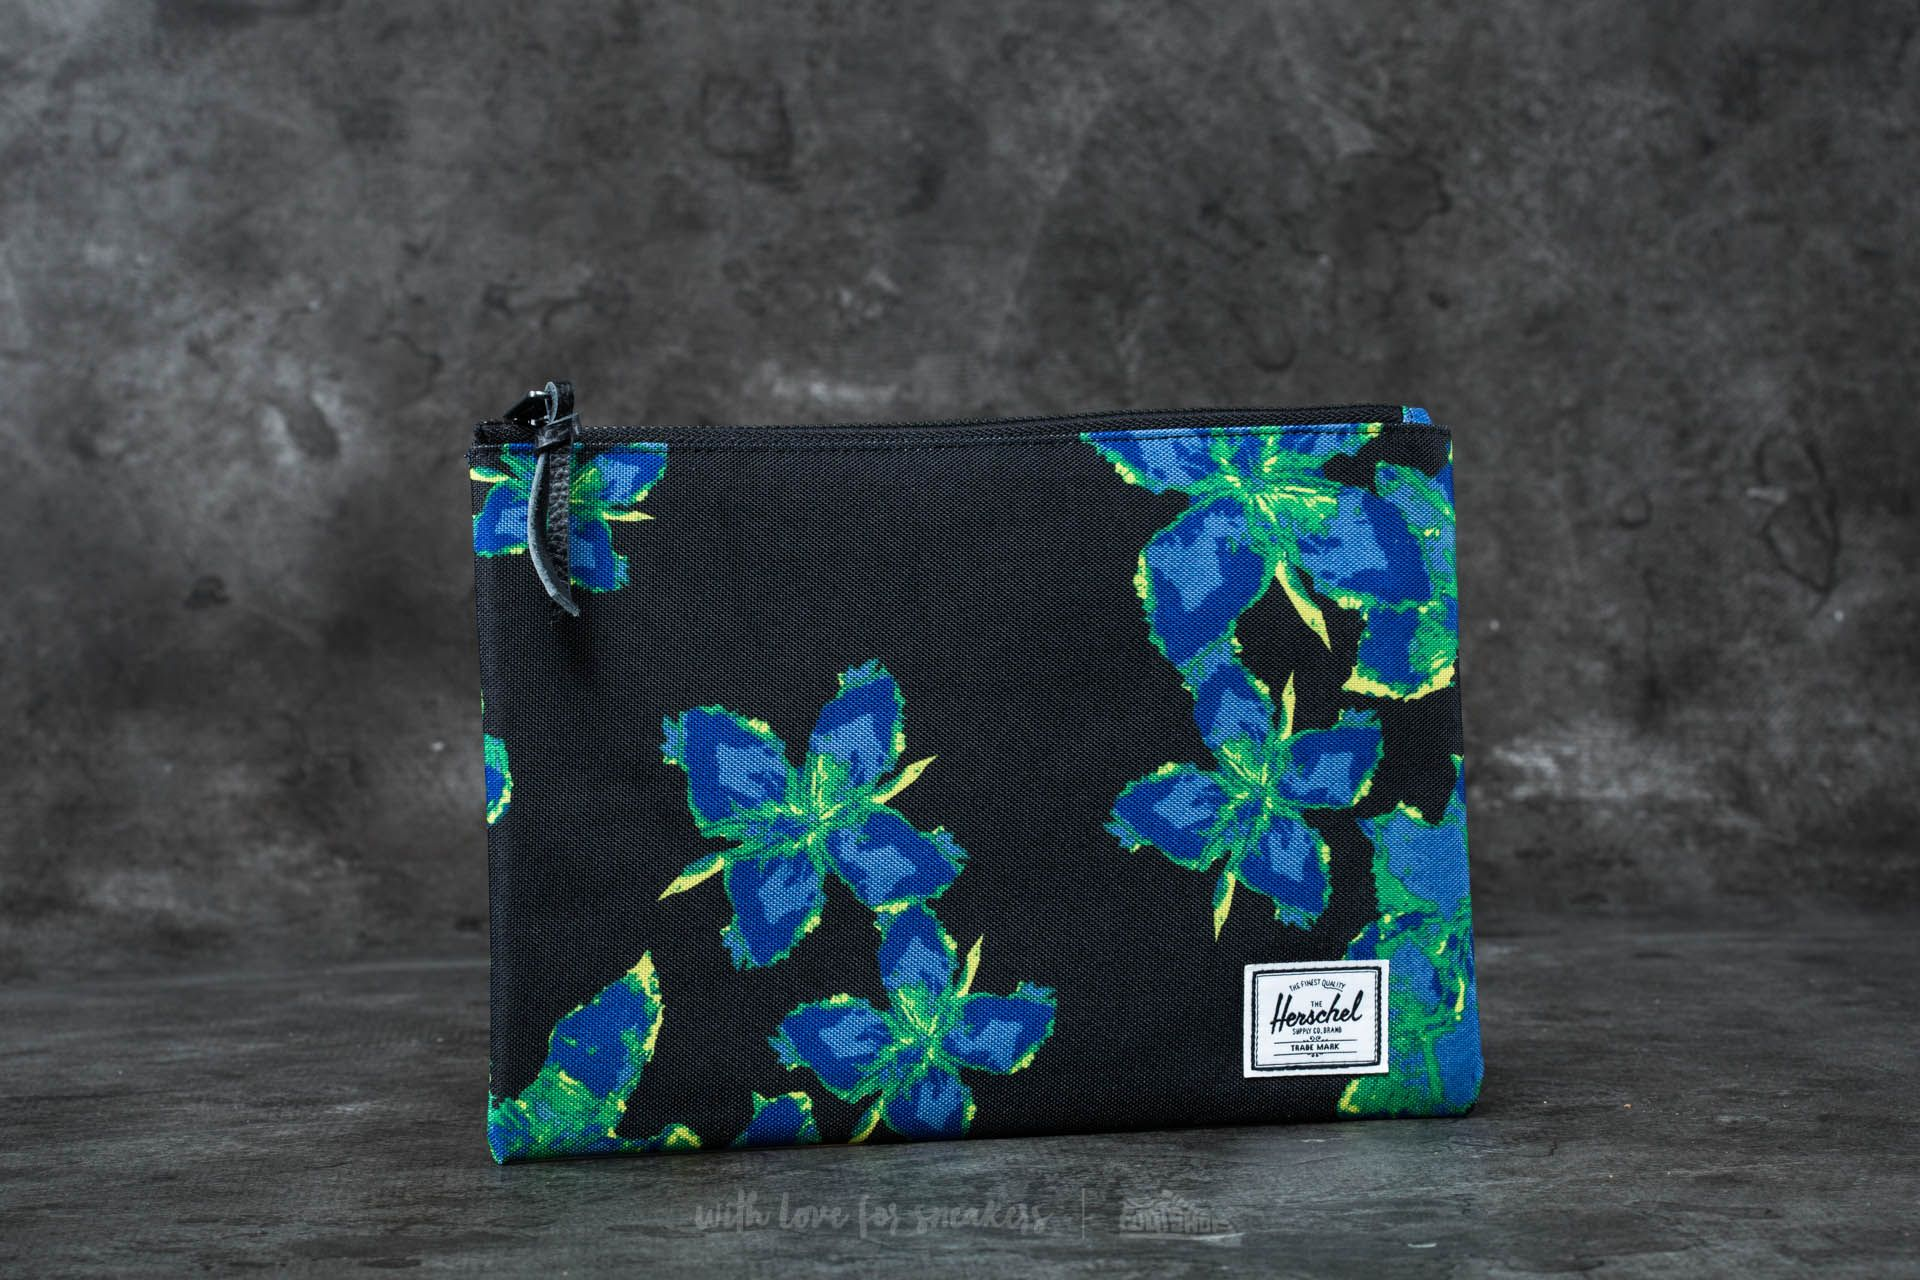 Herschel Supply Co. Network Pouch Neon Floral - 16526